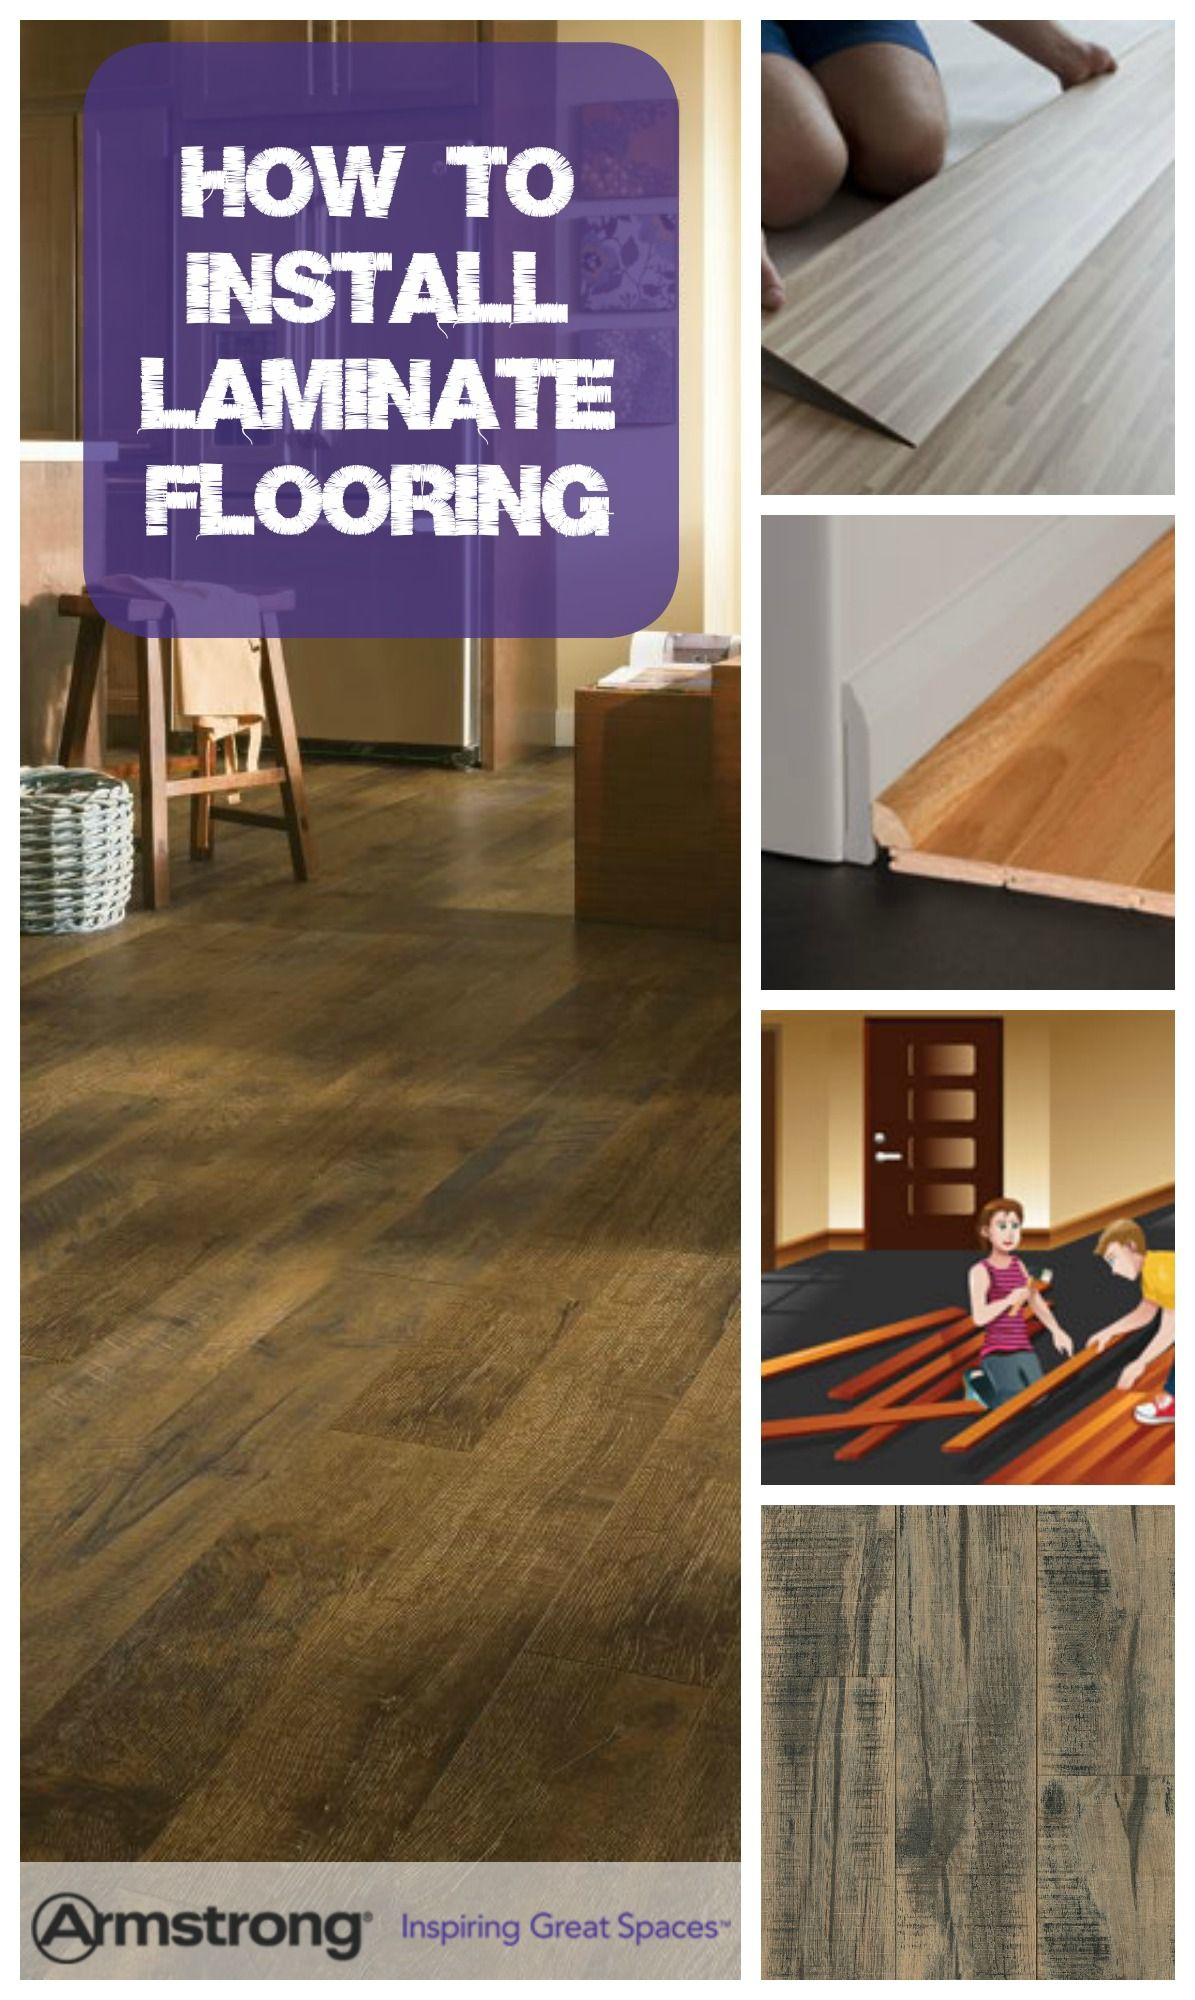 How do you install laminate flooring? We've got all you